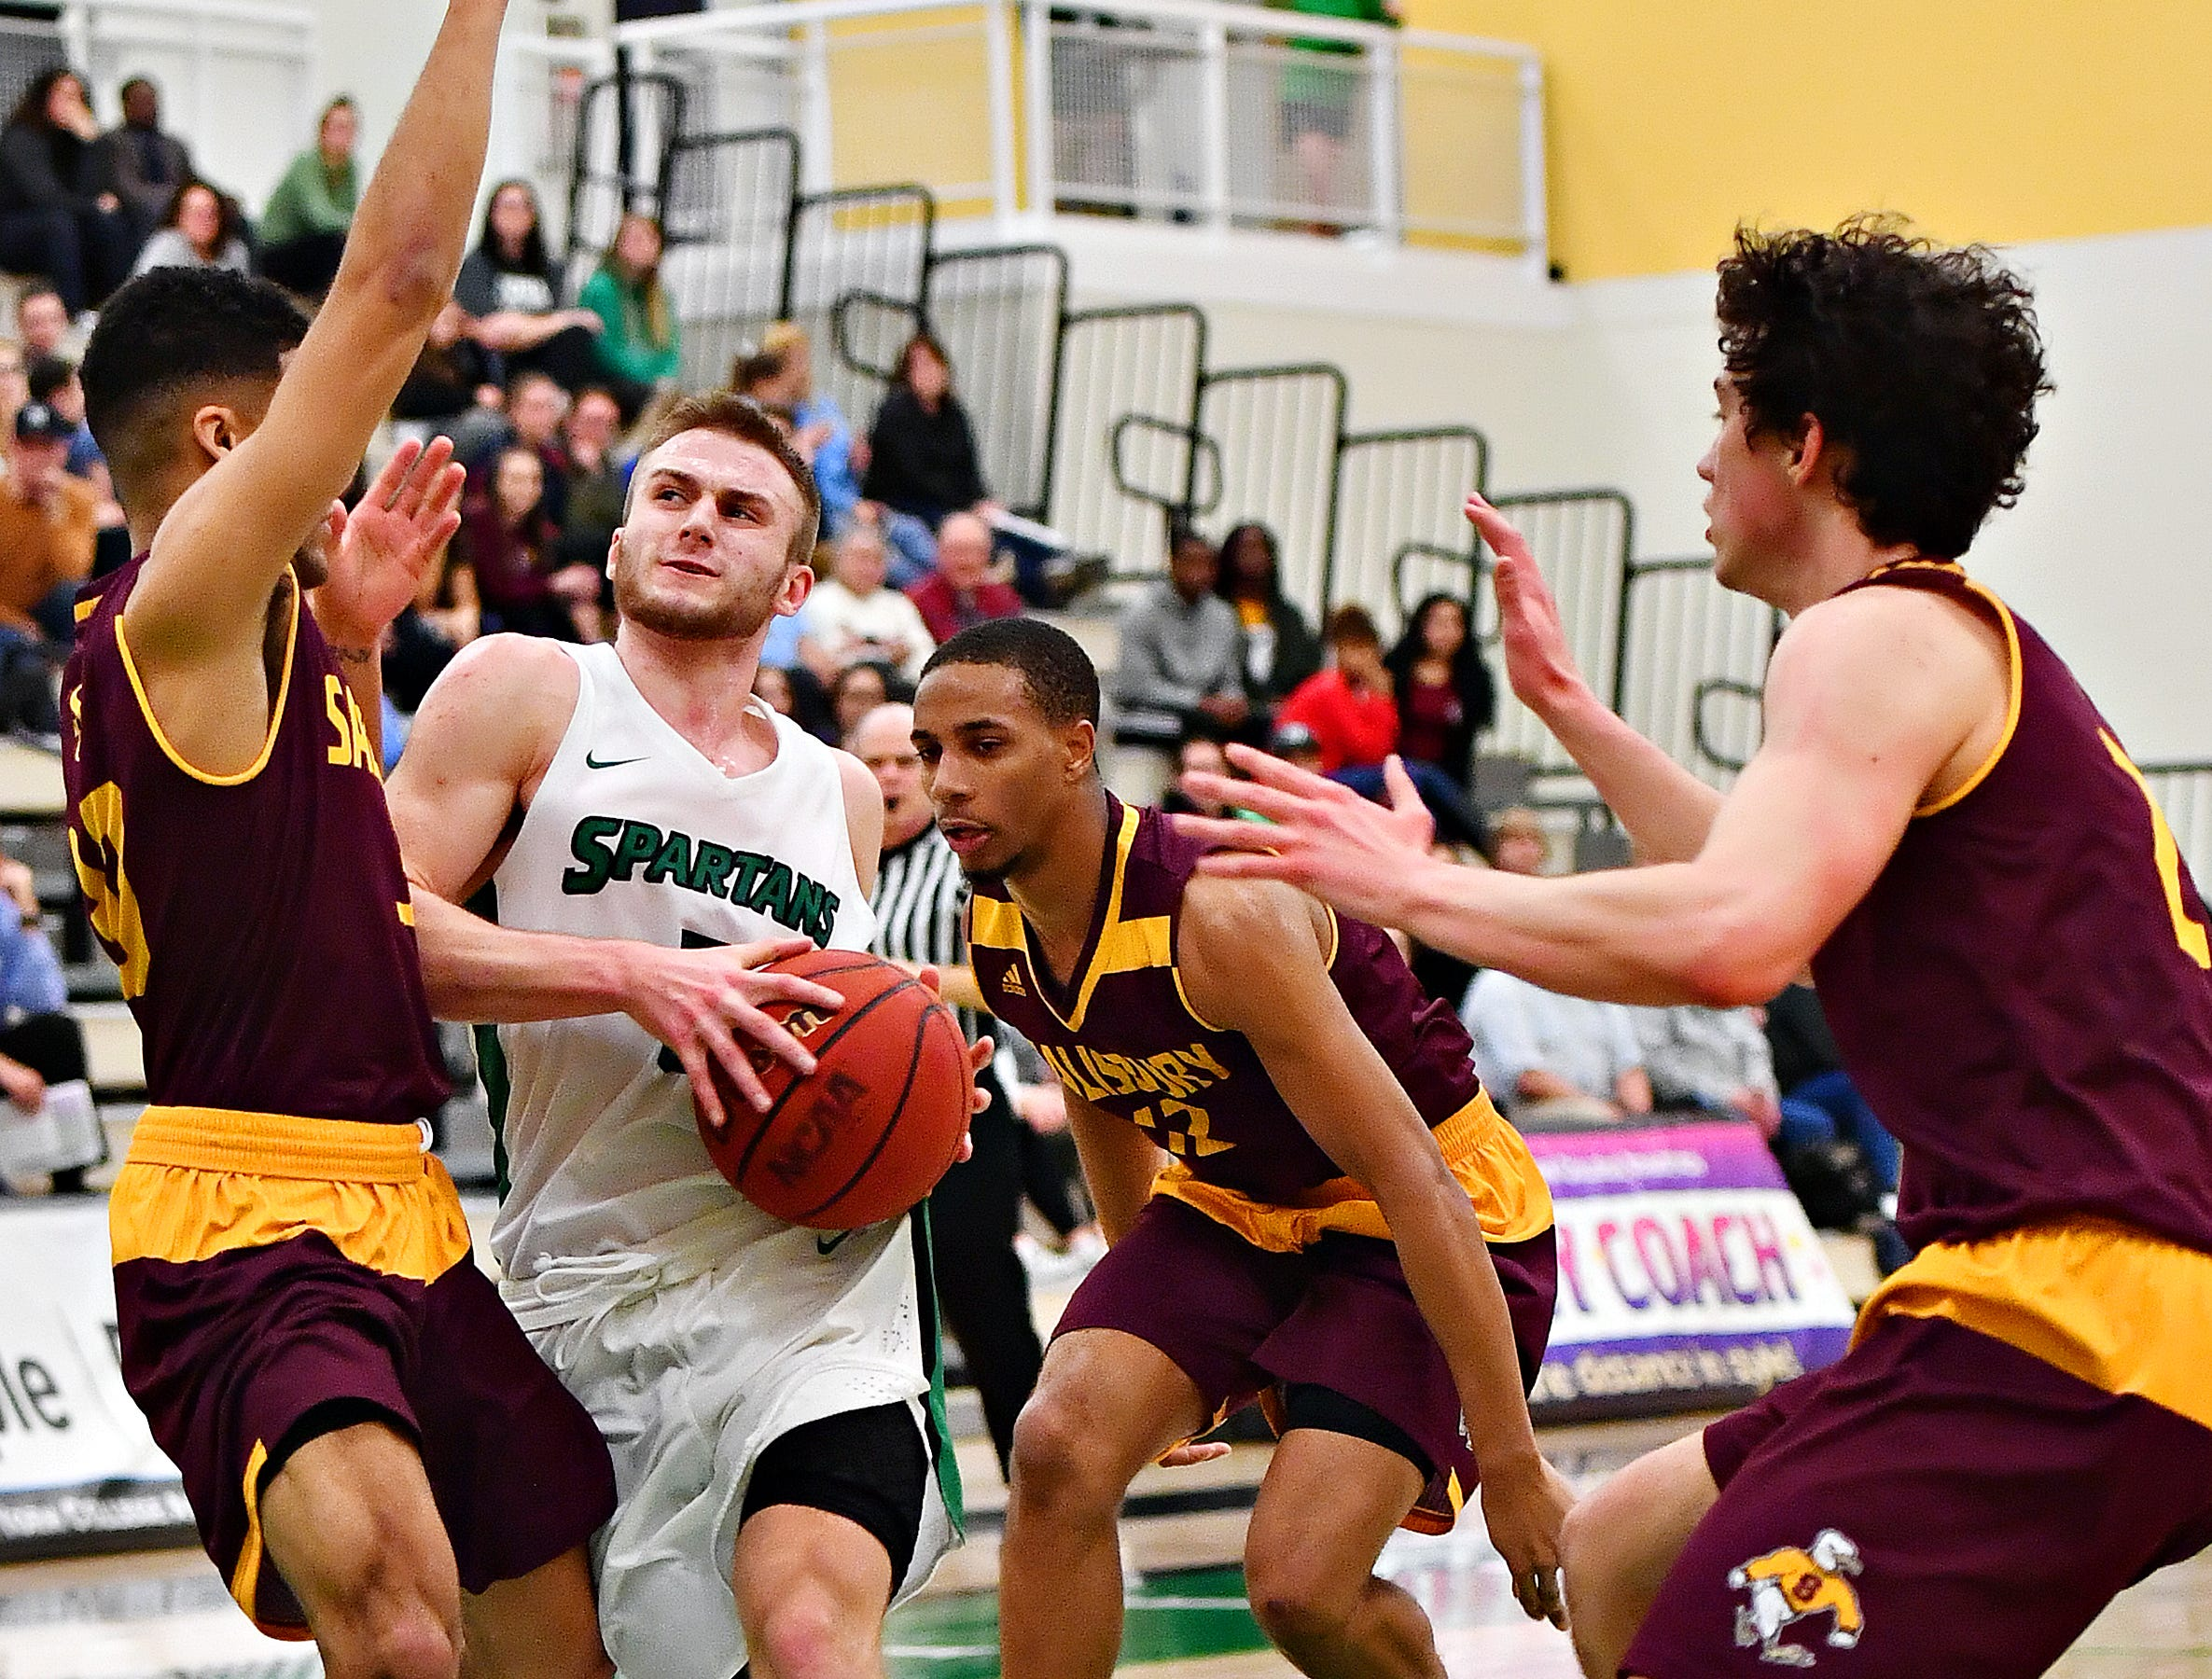 York College's Jared Wagner, center, works to get past Salisbury's Braedon Dorsey, left, and Mike Ward during men's basketball action at Grumbacher Sport and Fitness Center at York College of Pennsylvania in Spring Garden Township, Wednesday, Feb. 6, 2019. Dawn J. Sagert photo